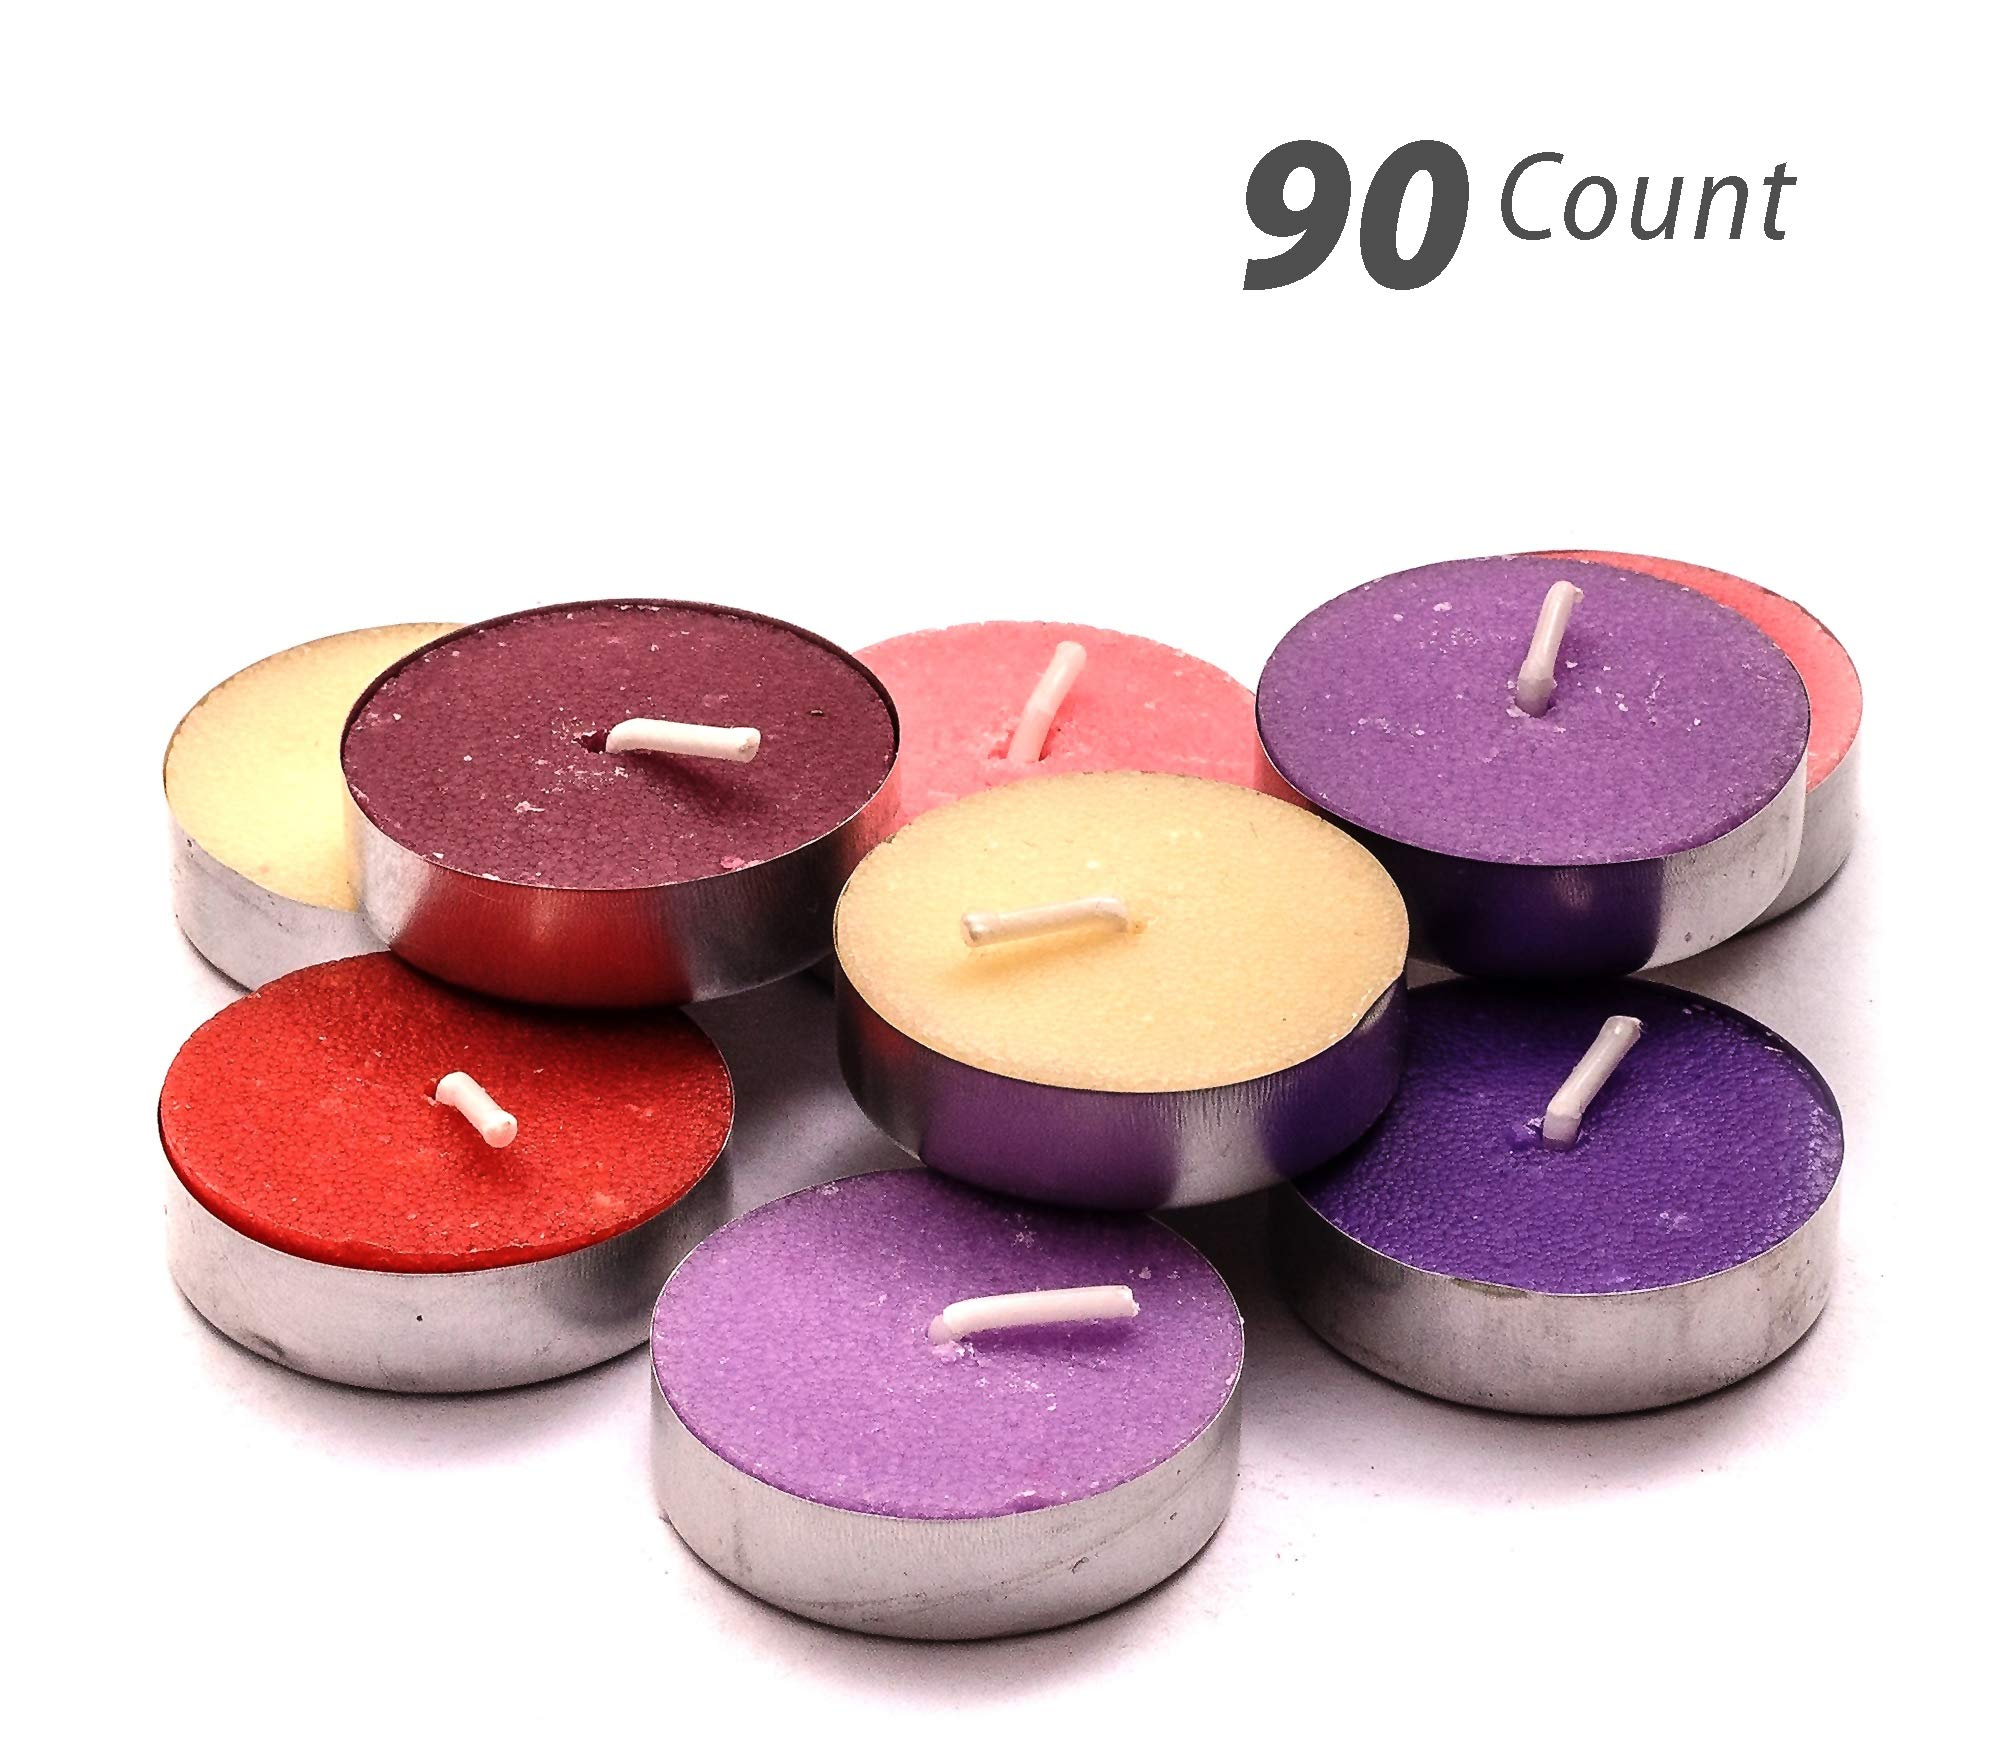 Exquizite Variety Collection - Highly Scented Luxury Tealight Candles - 90 pcs - Set of 15 Tealights with 6 Fragrances - Lavender, French Vanilla, Rose, Apple Cinnamon, Lilac and Black Cherry by Exquizite